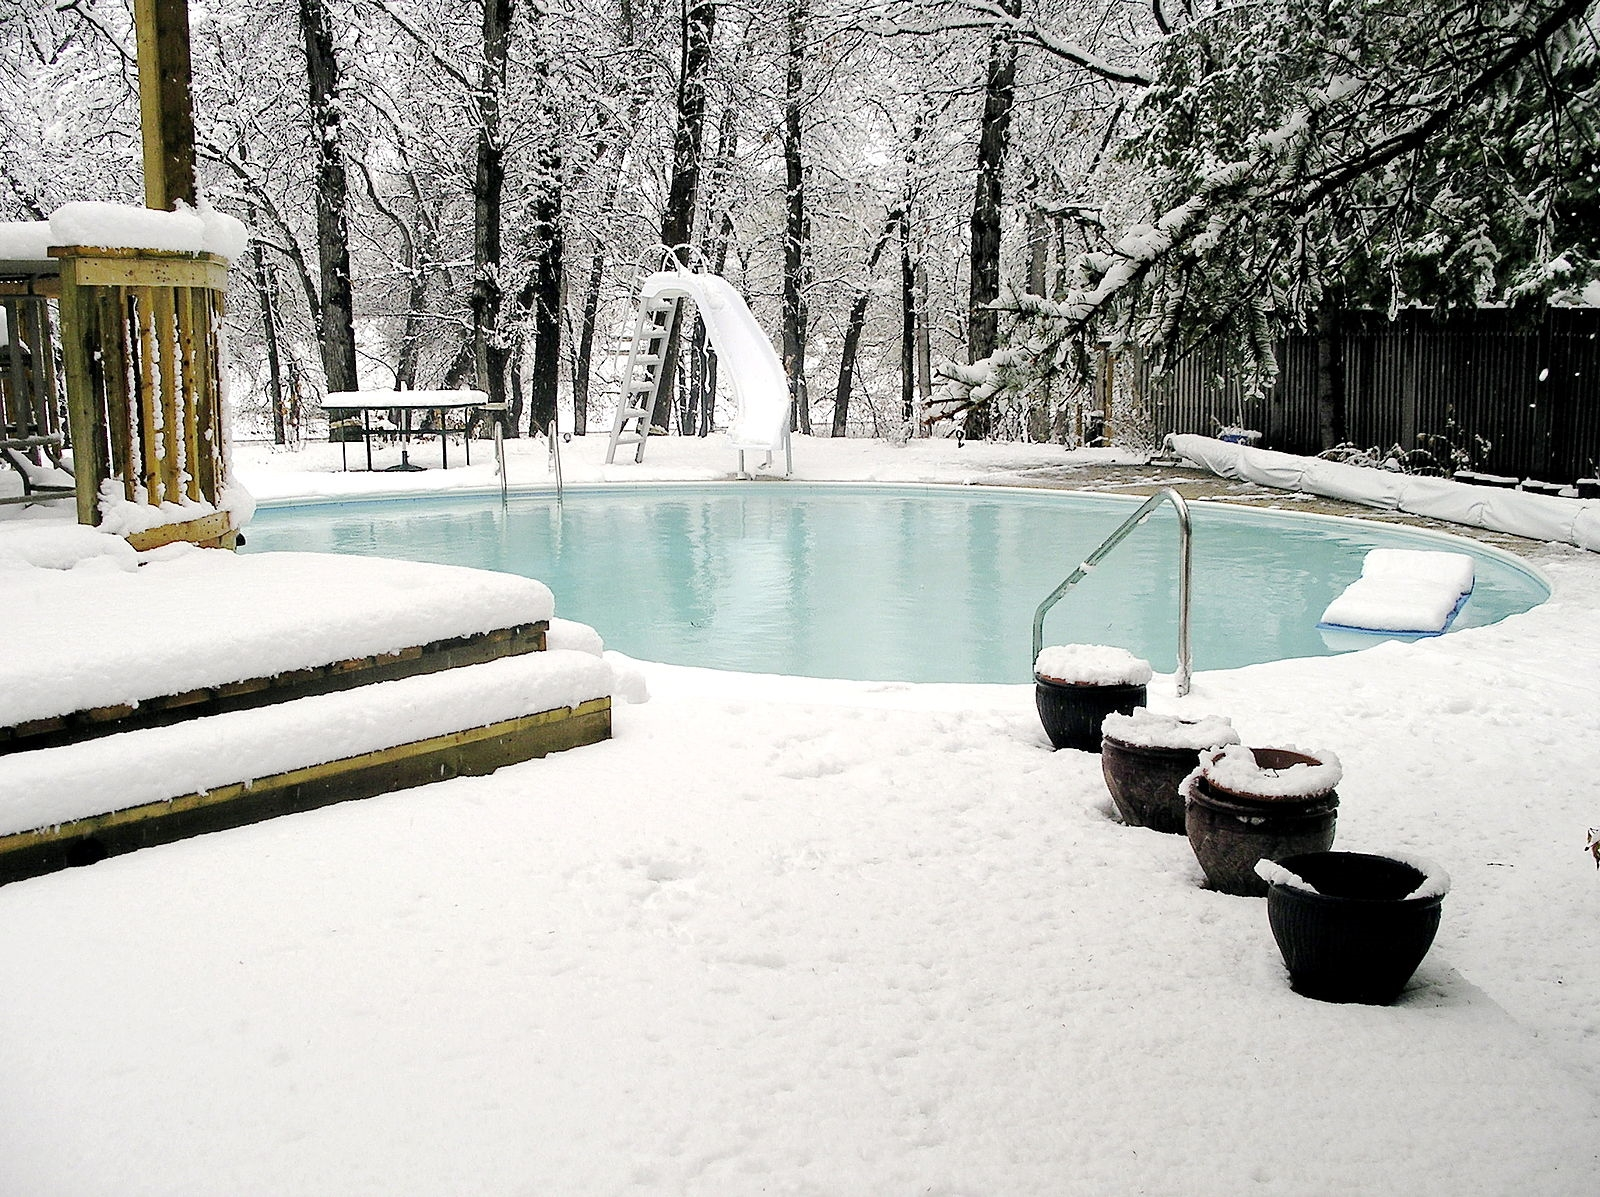 Snow Covered Pool Patio